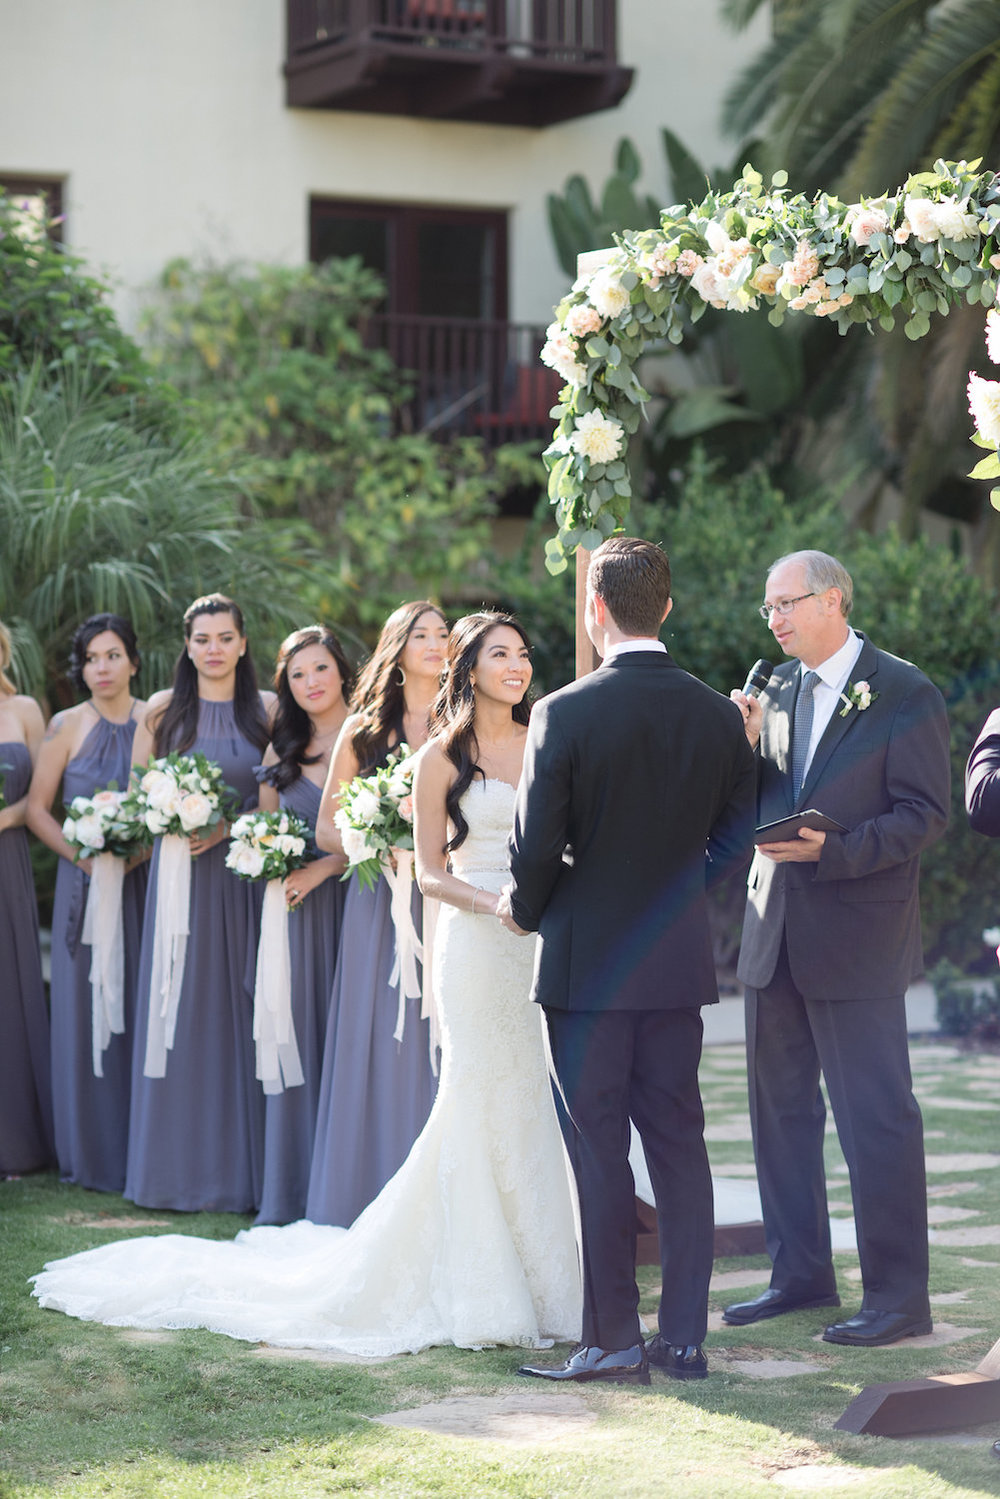 Wood arch with garland wedding ceremony at Estancia Hotel & Spa, La Jolla by Compass Floral.